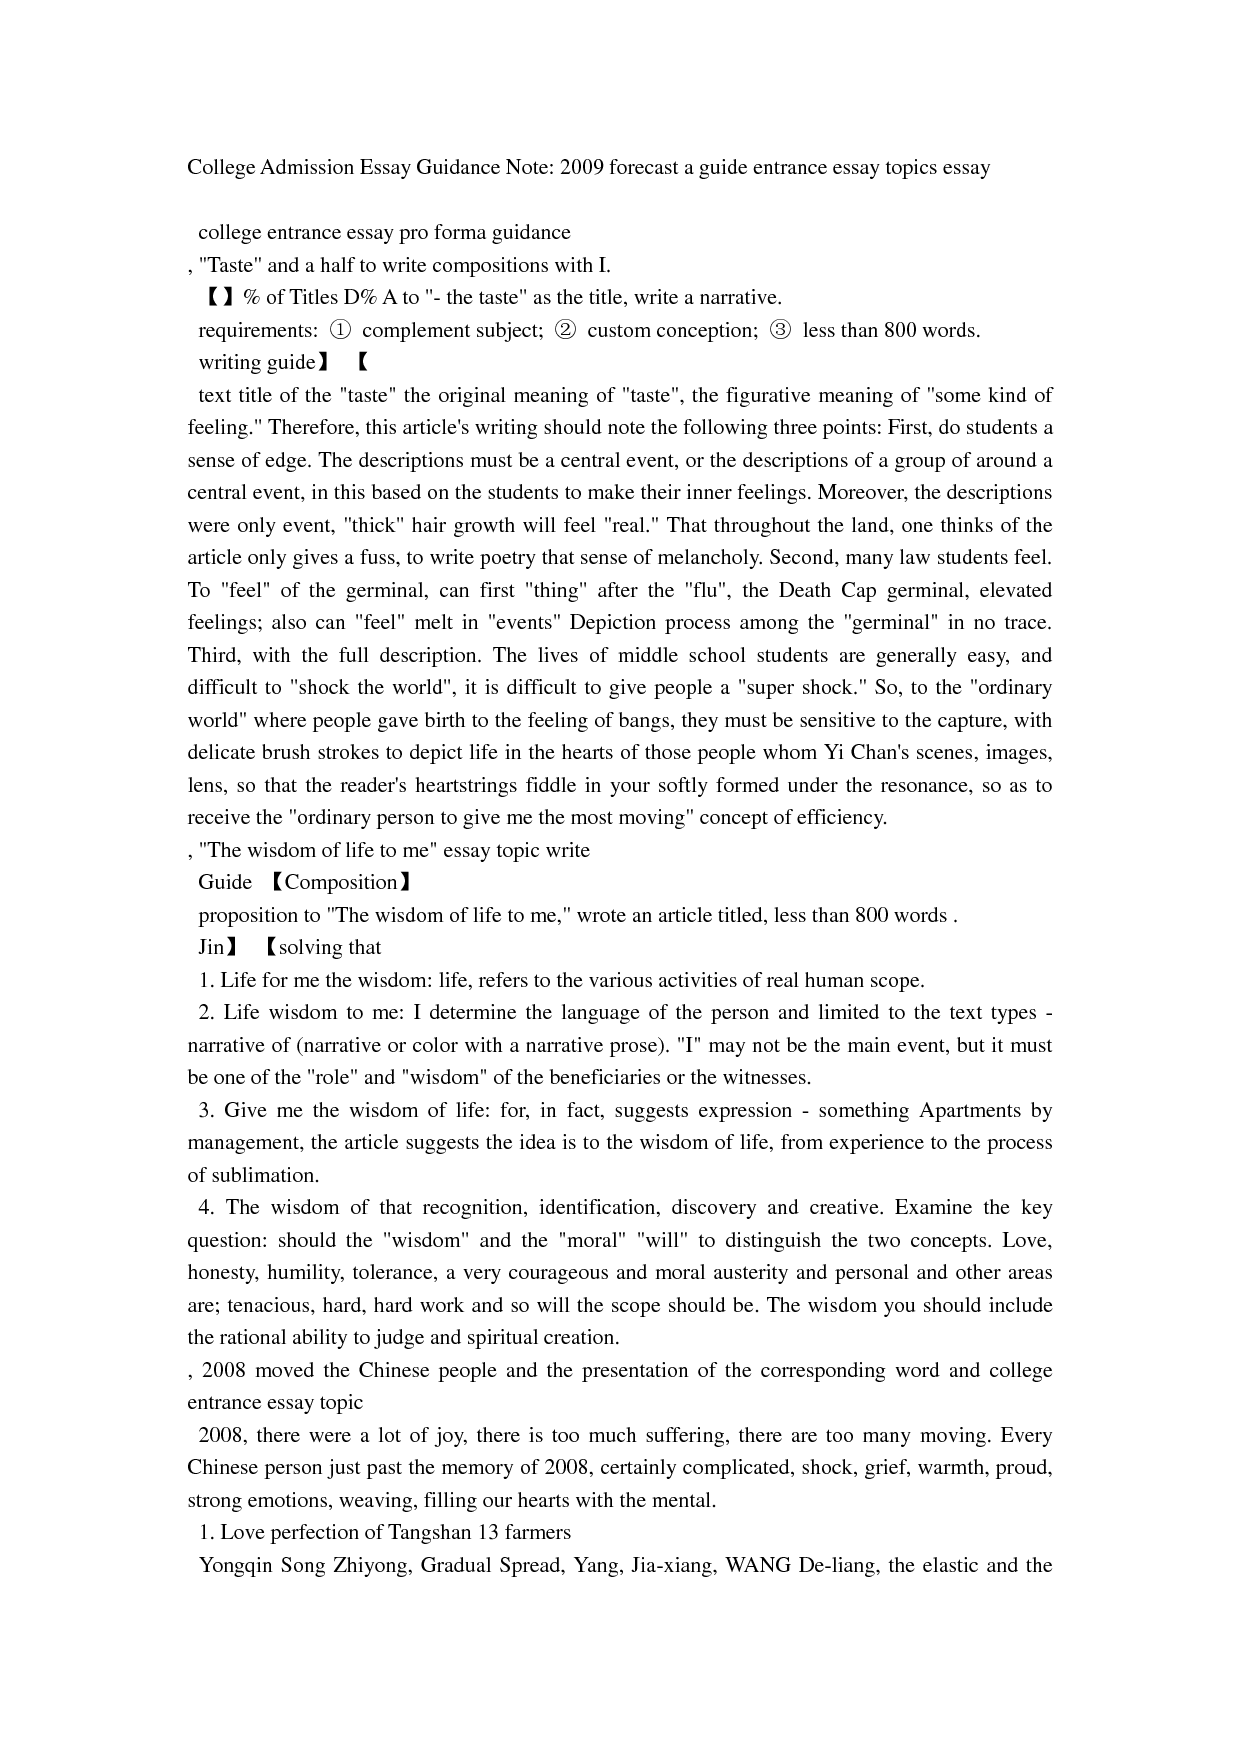 002 Top Essay Topics For College Example Controversial List Argument Of Easy Argumentative Xdaqu Great Middle School Gatsby Argumentativepersuasive Research Unbelievable 10 Full